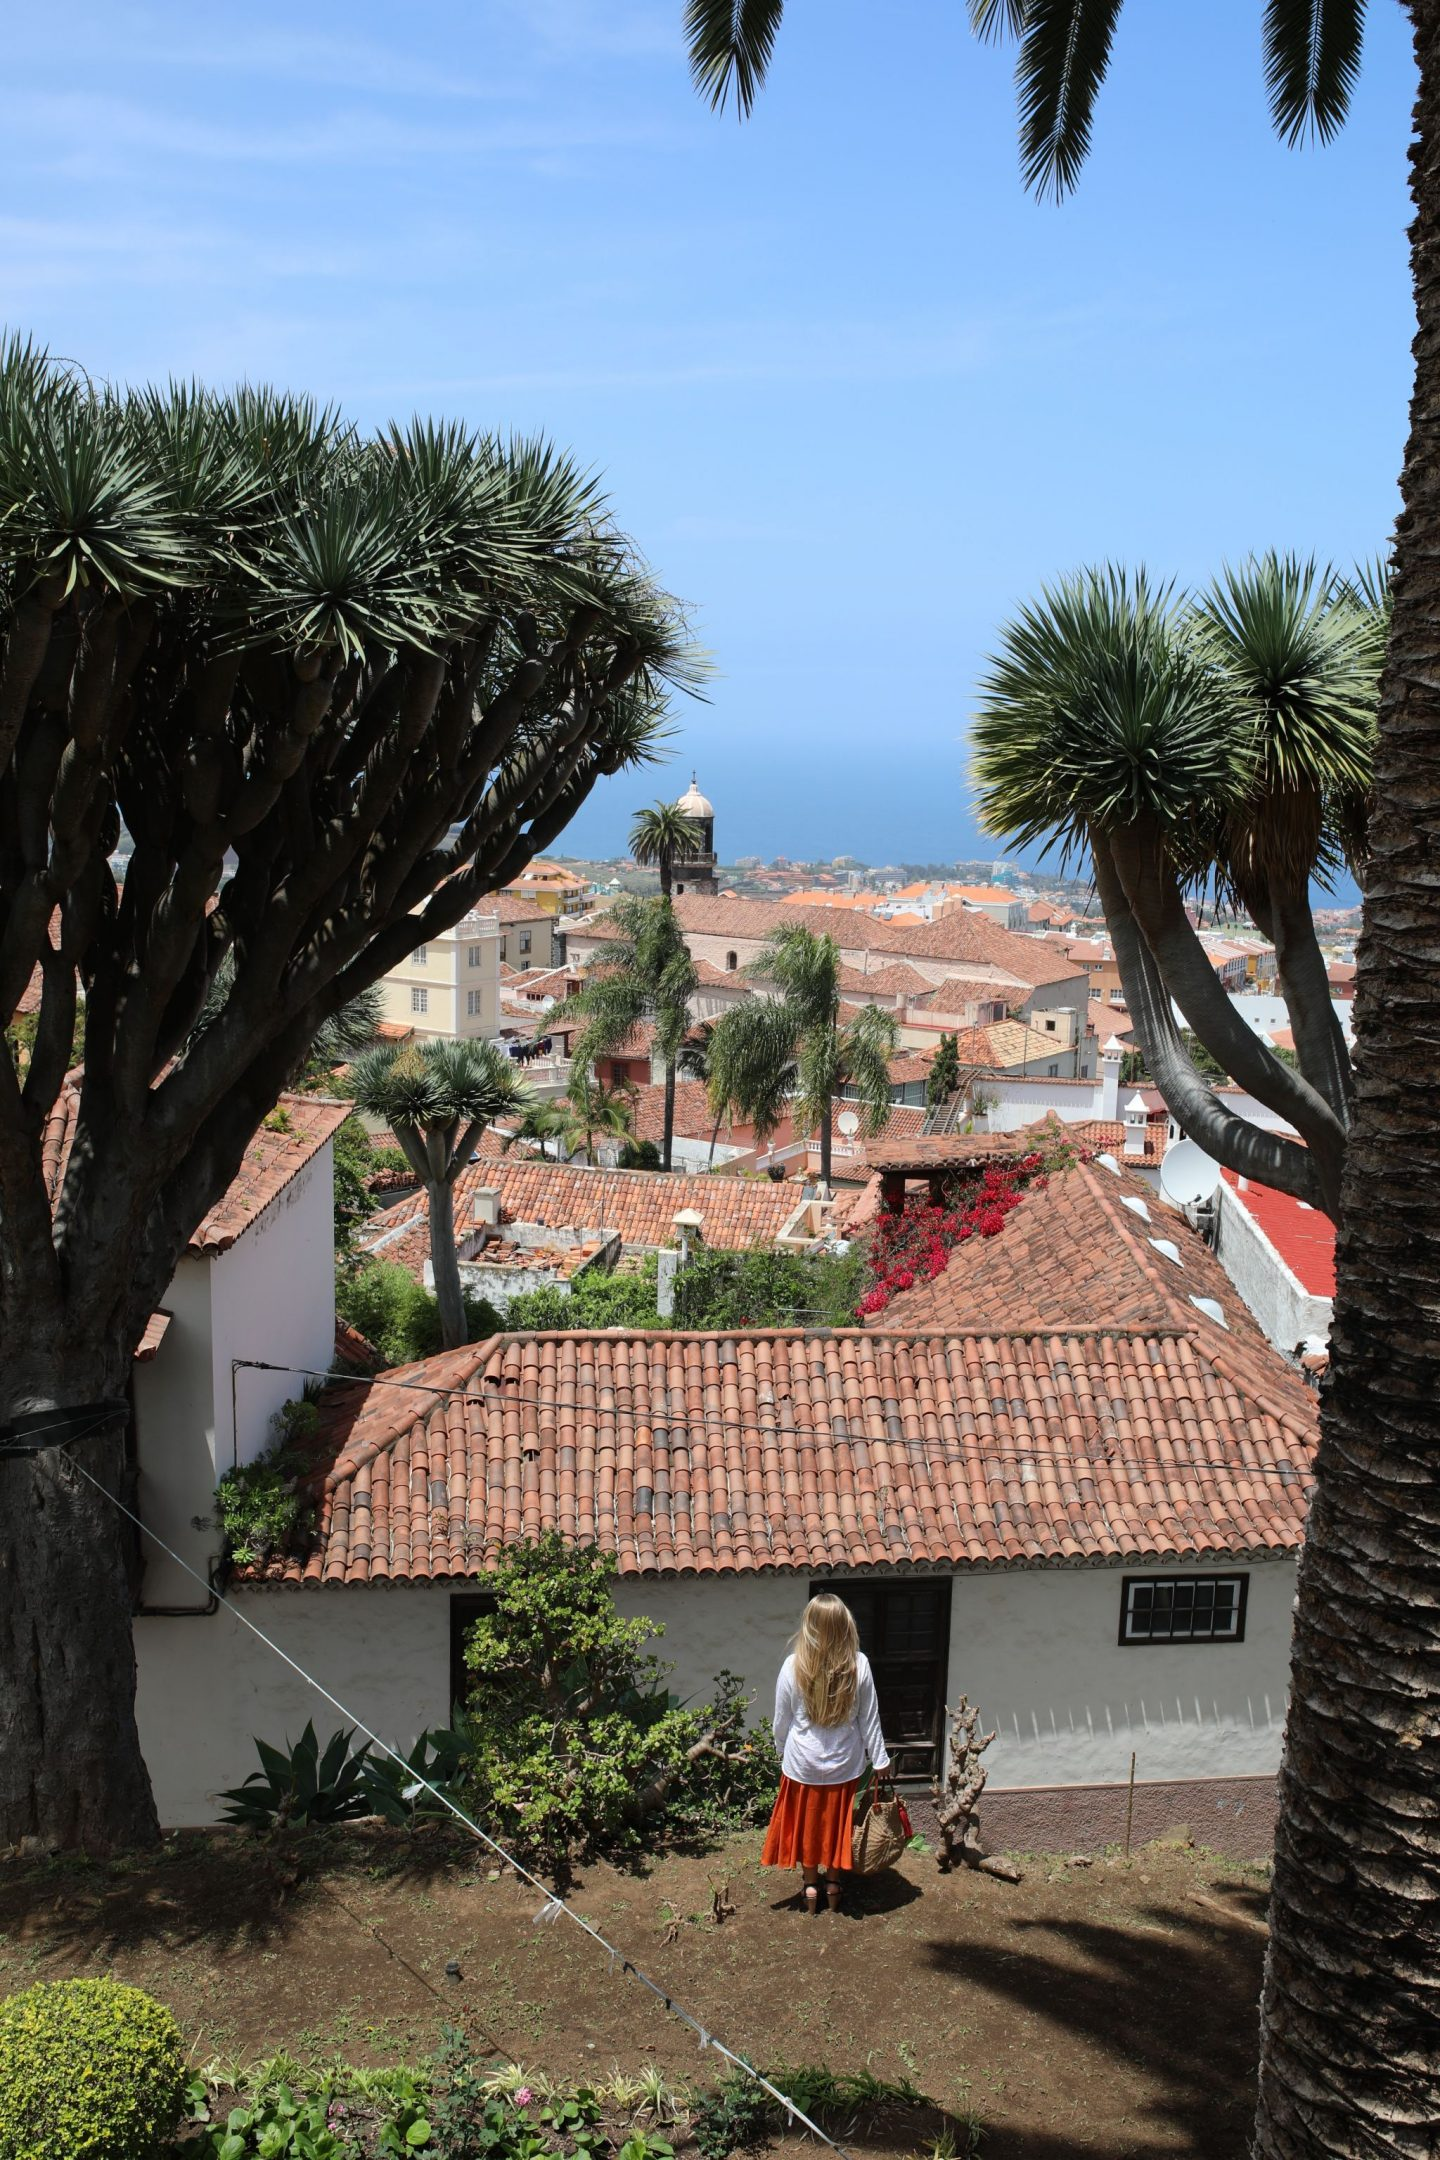 La Orotava, Tenerife, Canary Islands, Katie Heath, KALANCHOE